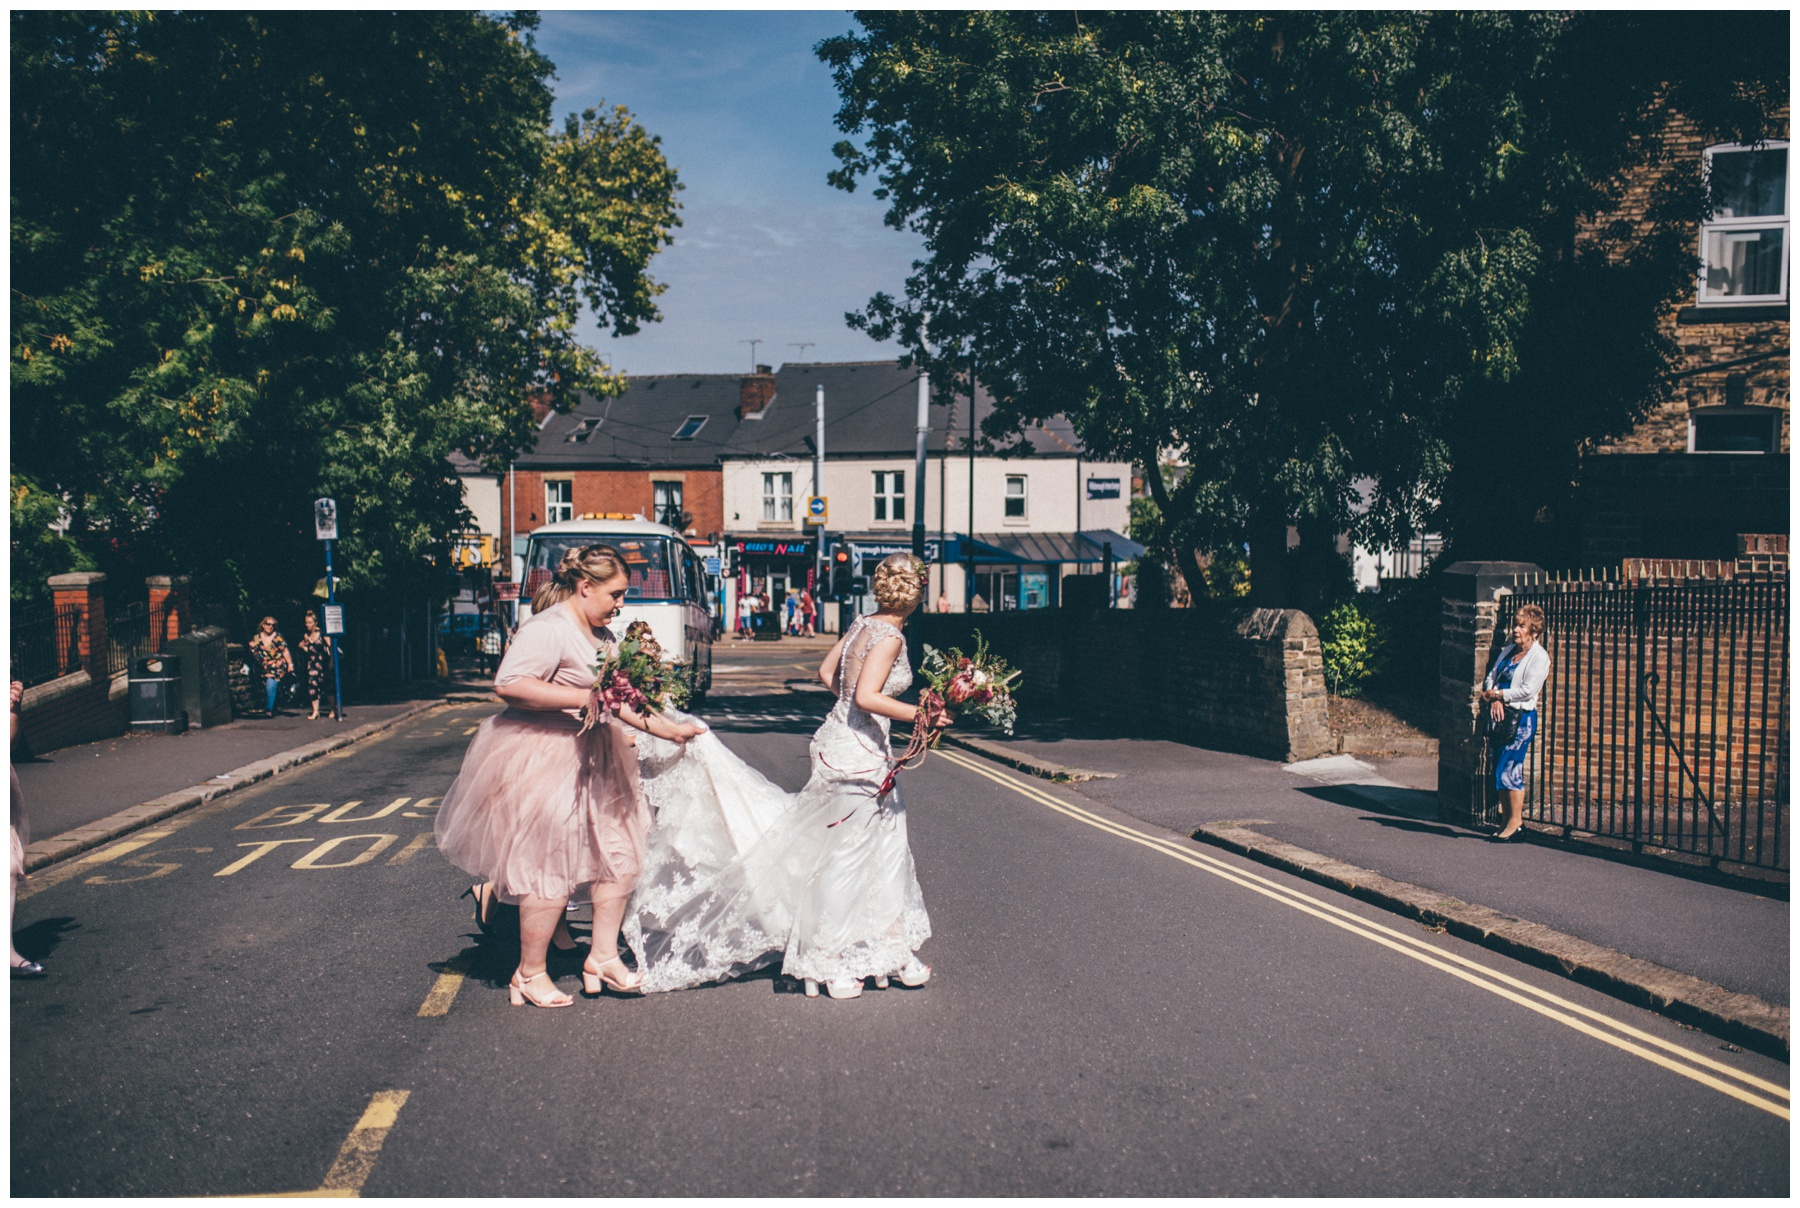 Bride gets helped across the busy city road by her bridesmaids.